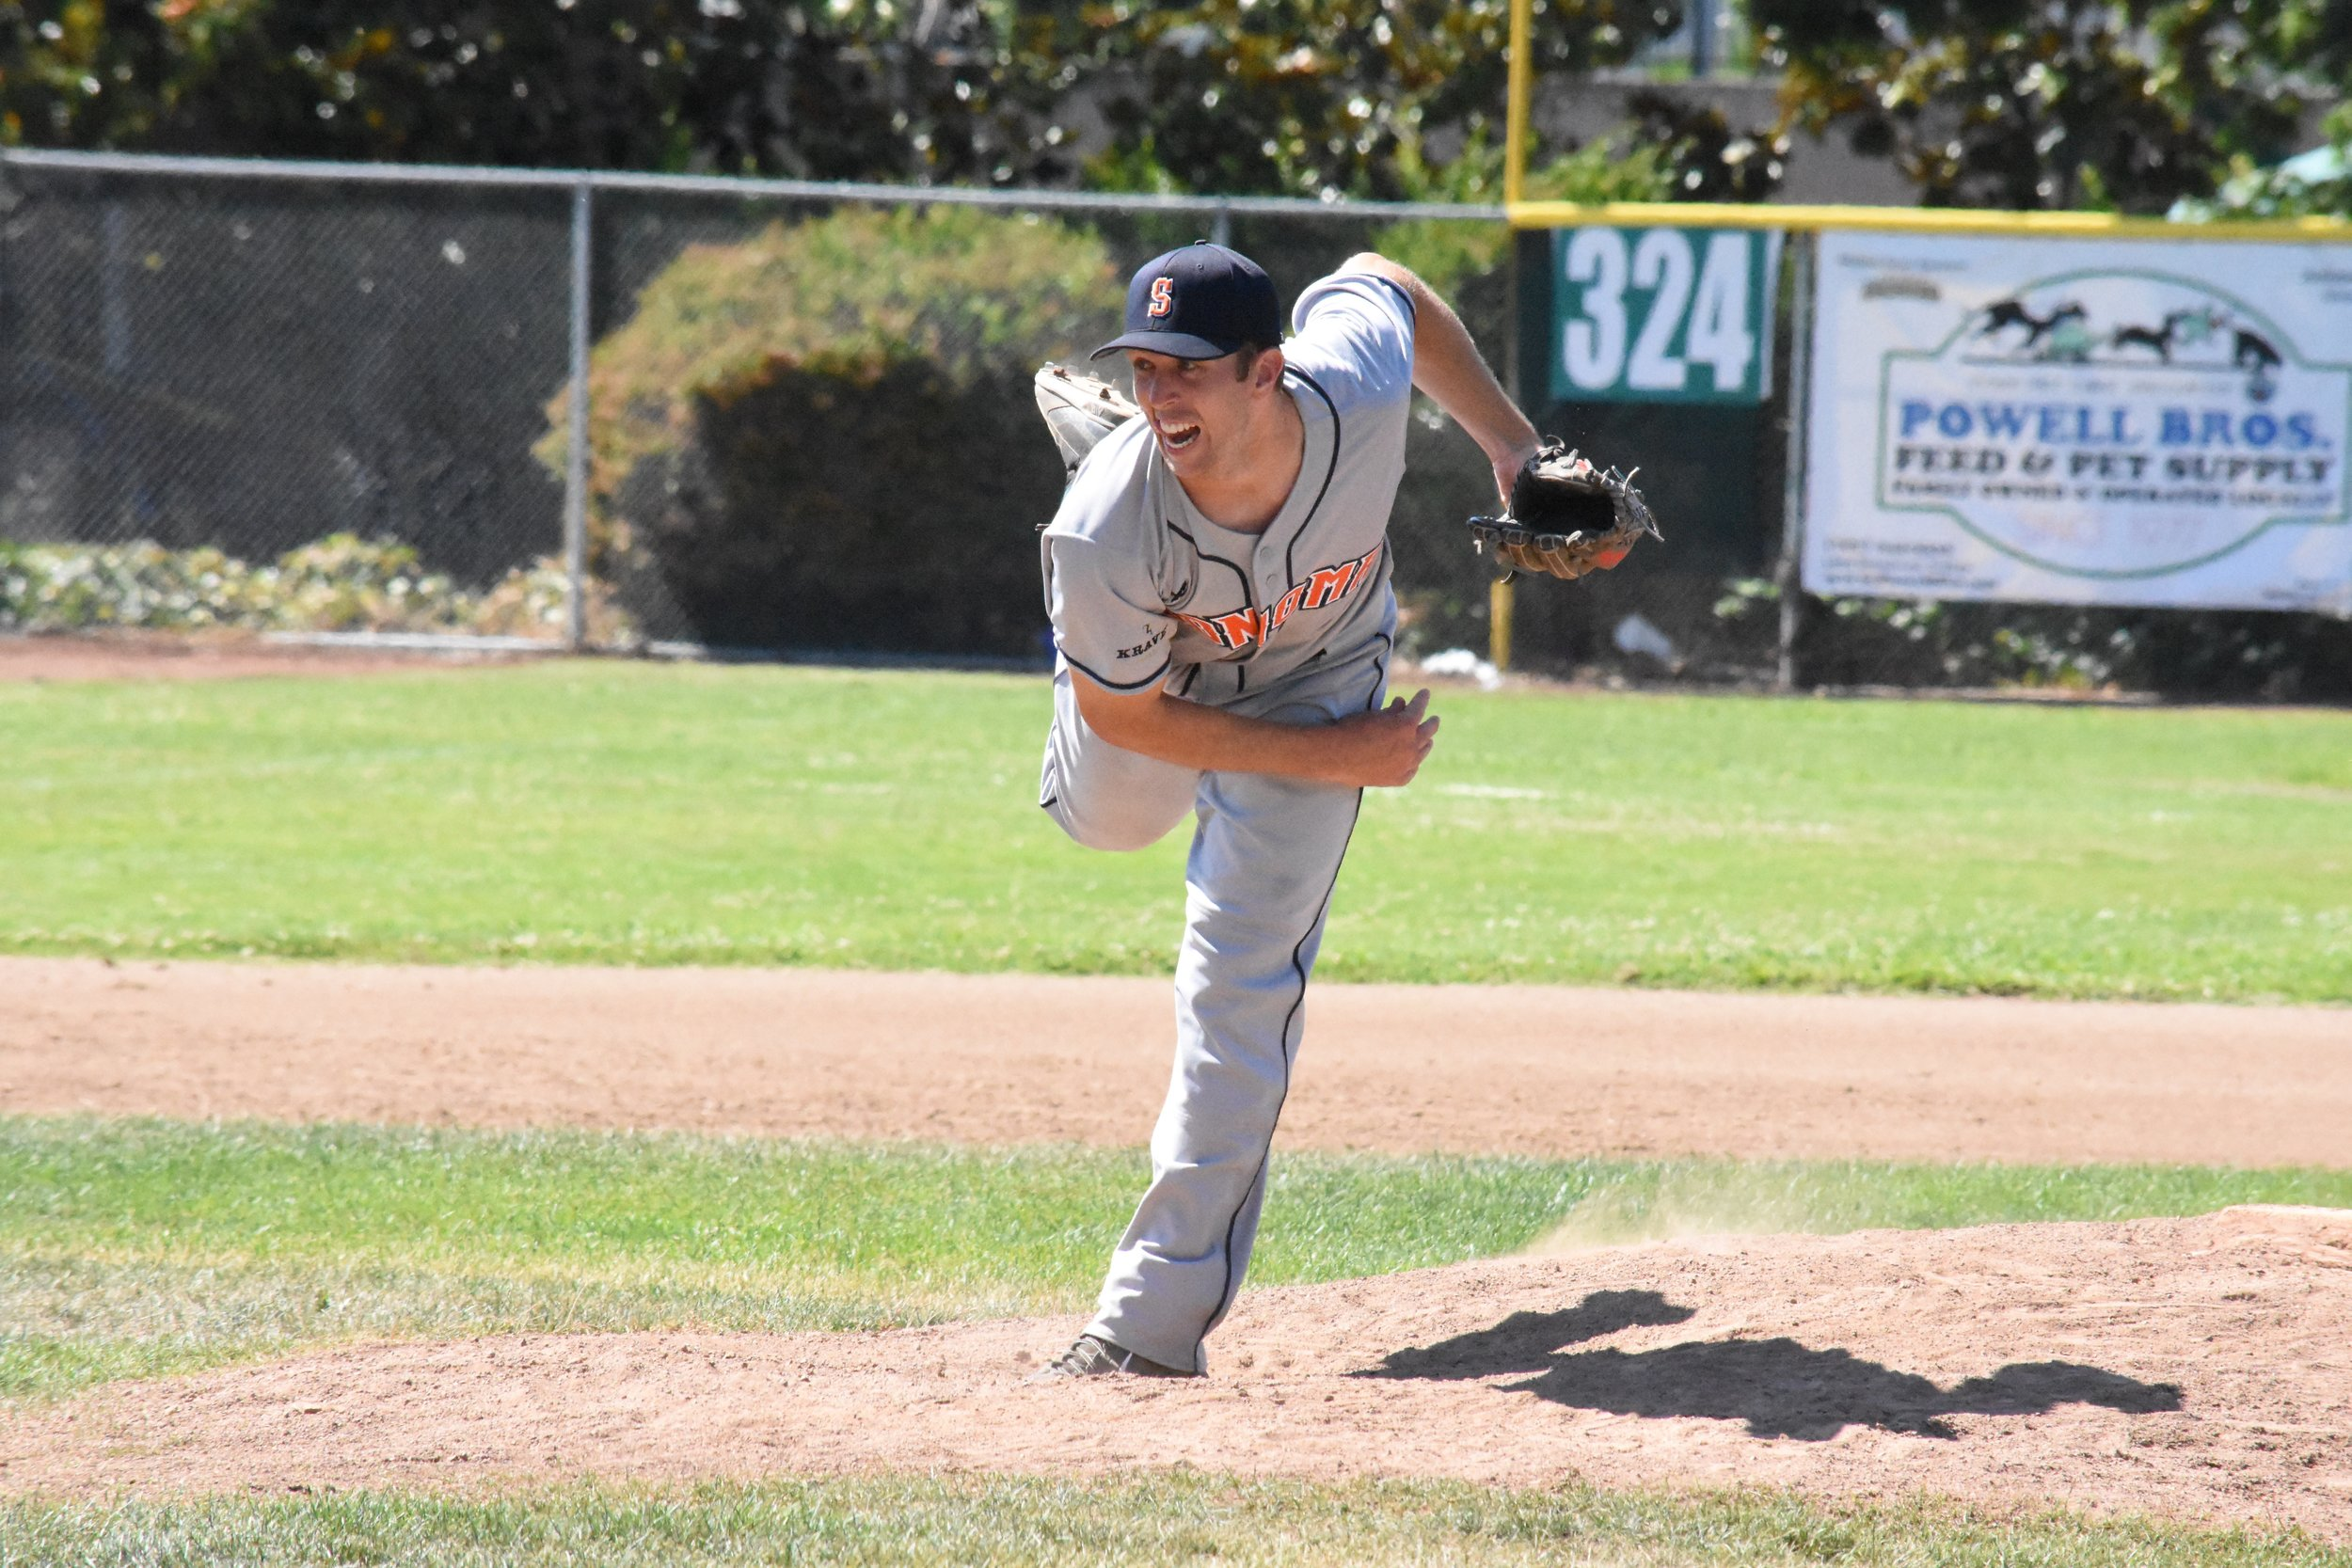 Starter Tyler Garkow had a season high 12 strikeouts in the Stompers 11-3 victory over the Admirals Sunday. Garkow allowed only four hits over seven innings of work.